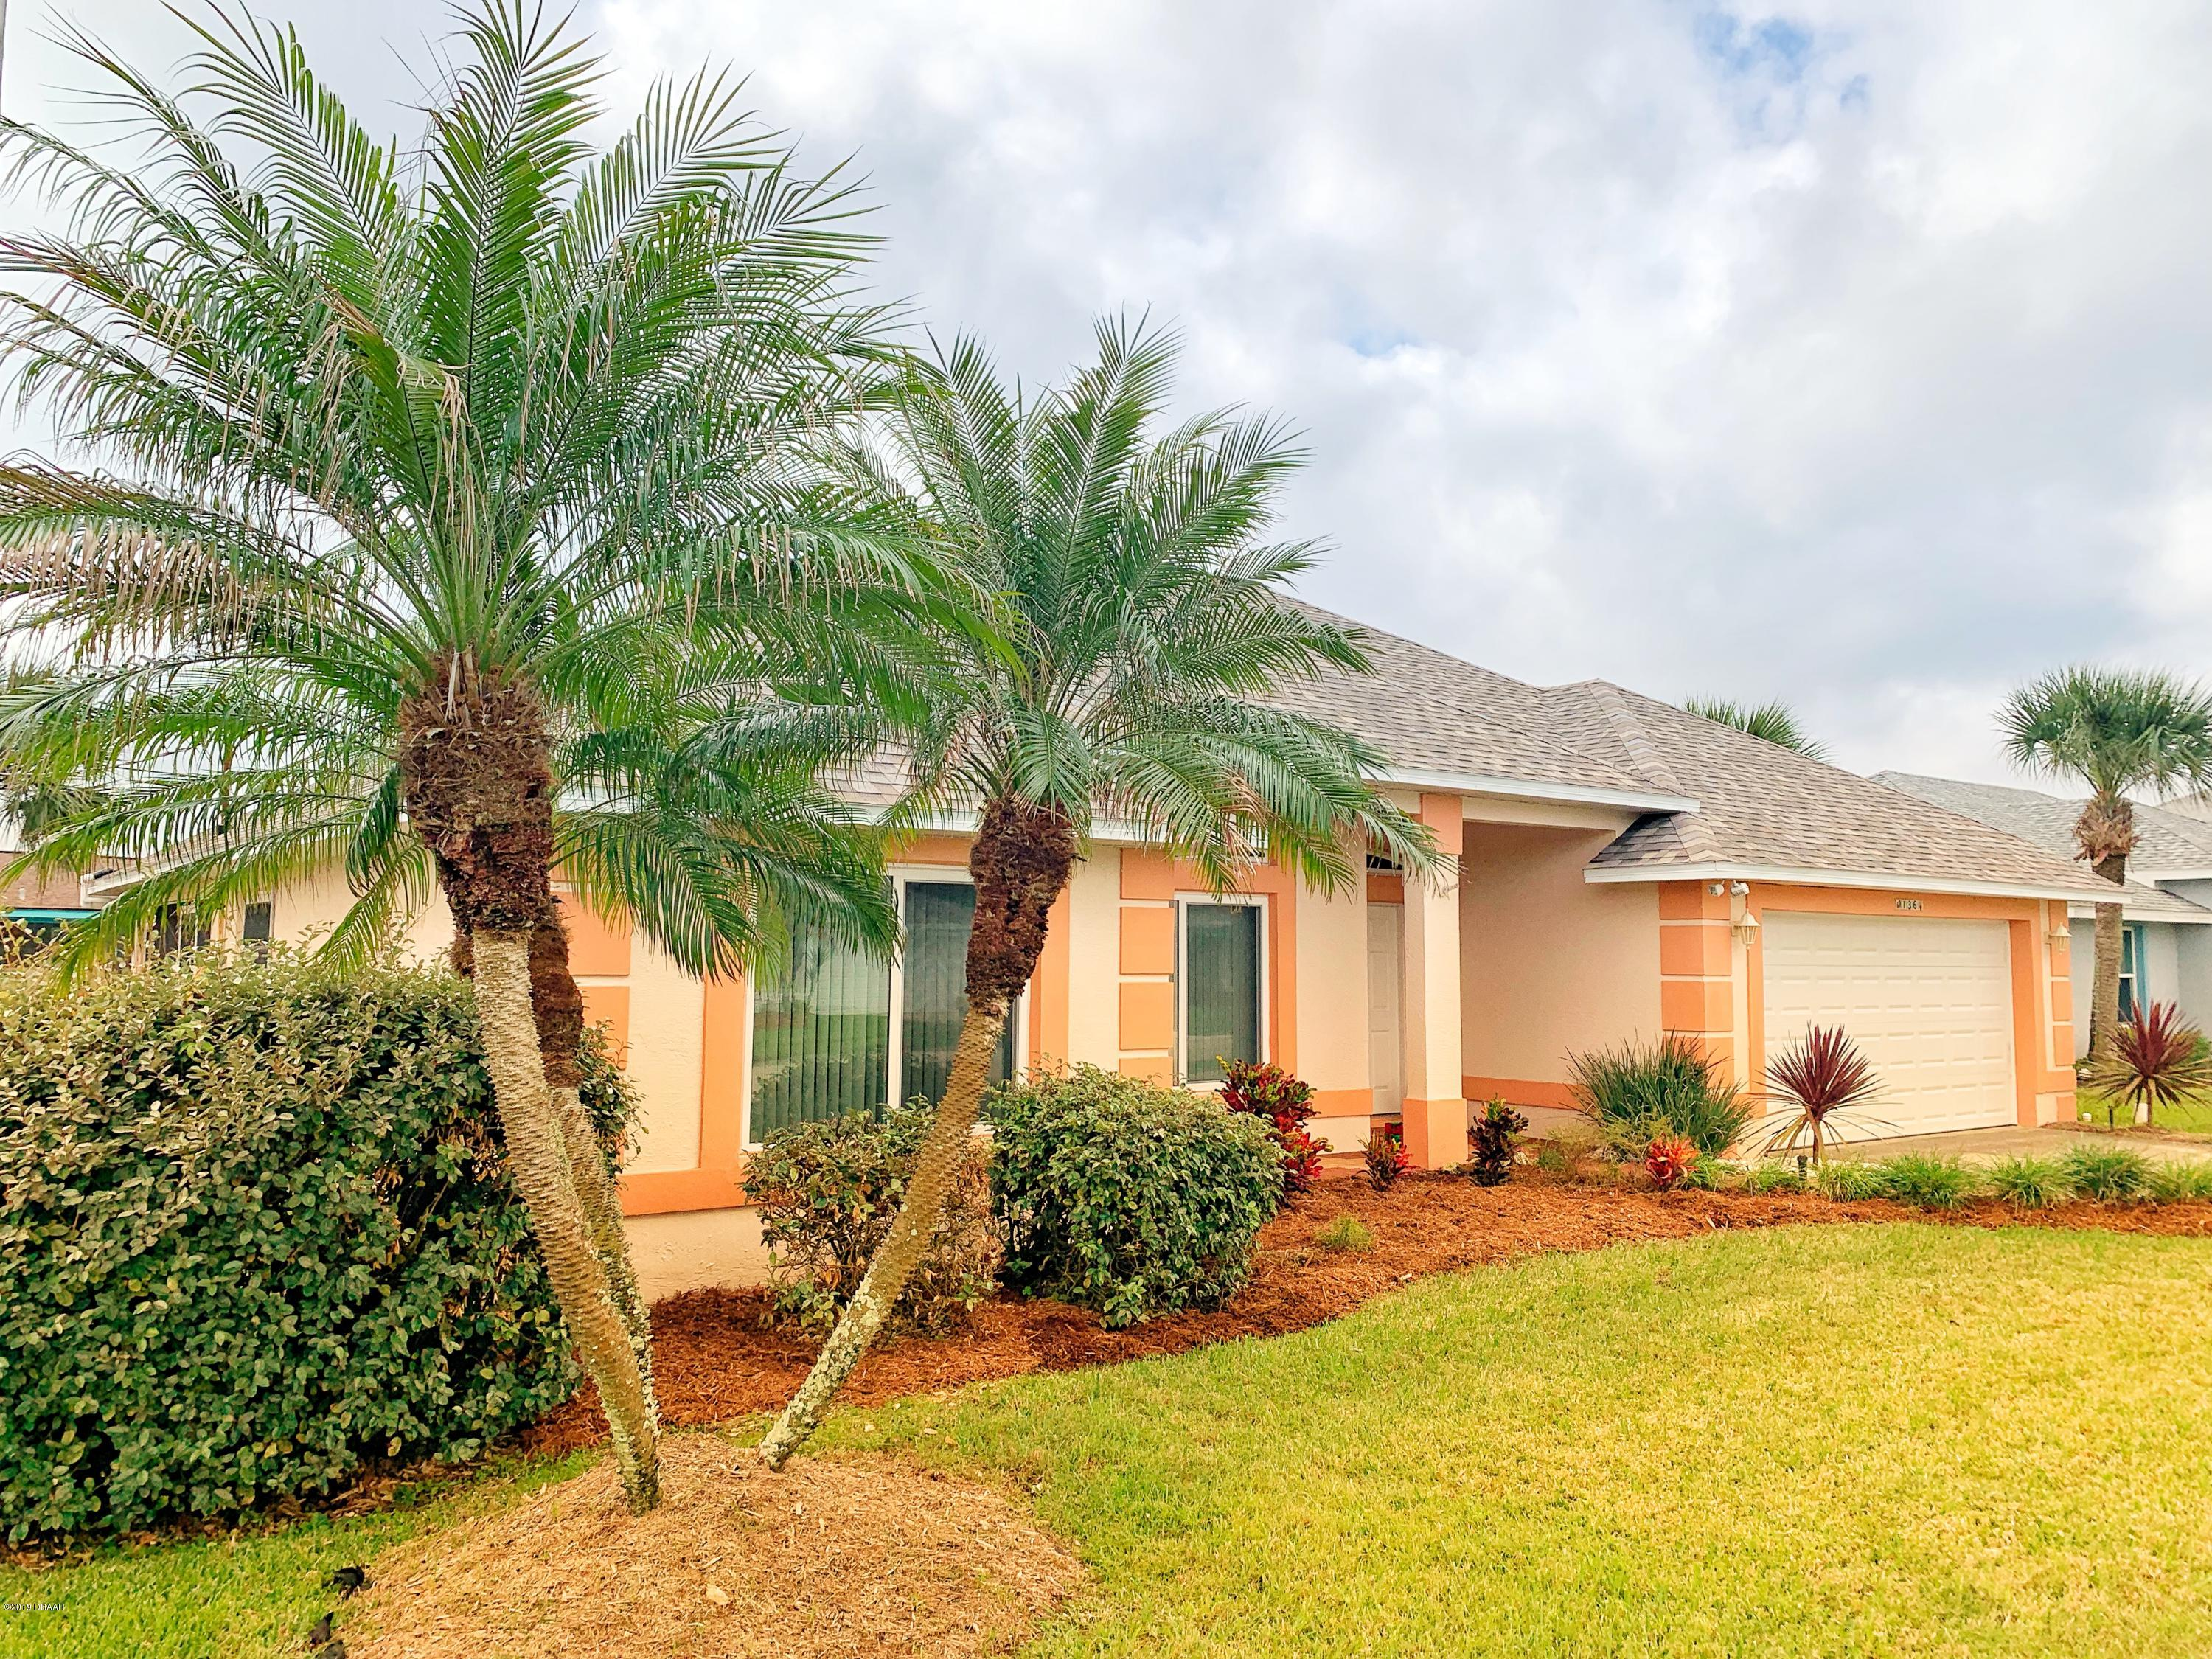 Photo of 136 Sandpiper Ridge Drive, Ormond Beach, FL 32176